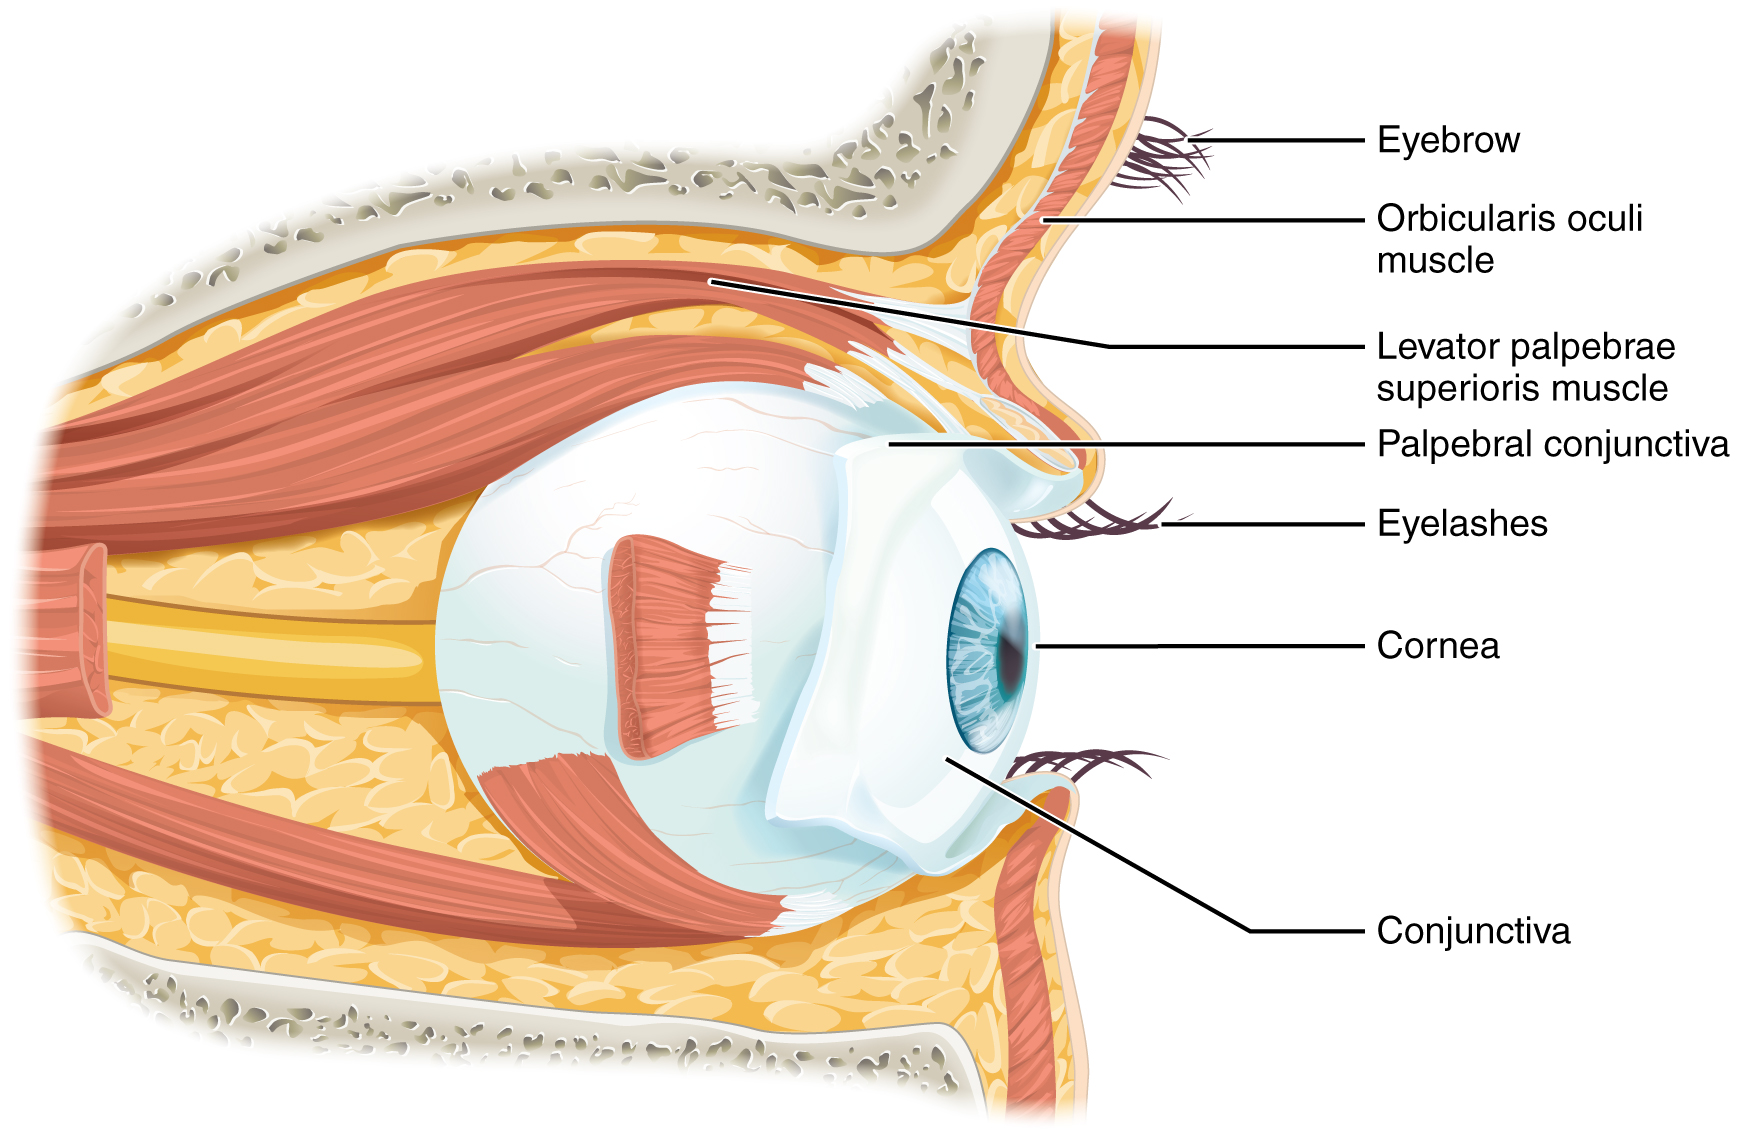 This diagram shows the lateral view of the eye. The major parts are labeled.